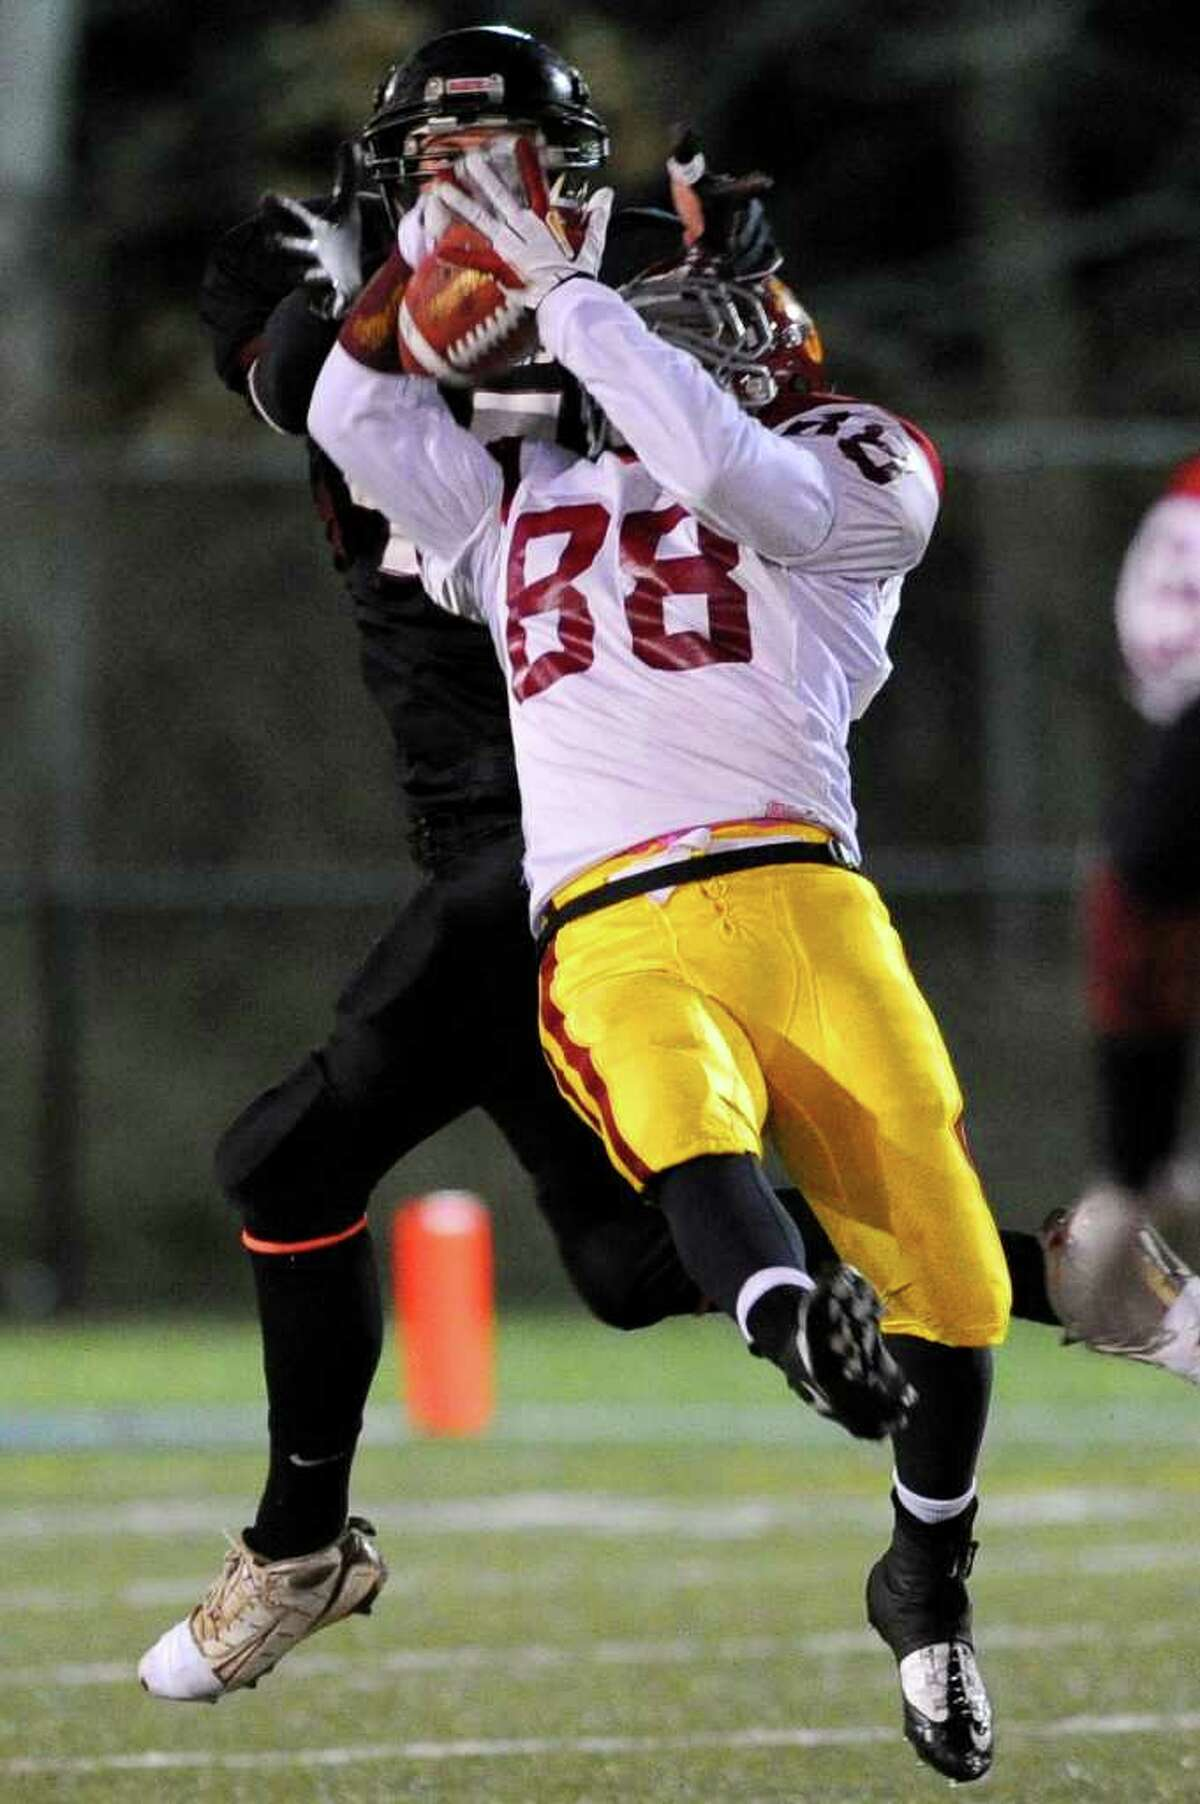 St. Joseph's Shane Miller intercepts a pass during Saturday's Class S semifinal game in Waterbury between St. Joseph and Valley Regional High Schools on December 4, 2010.